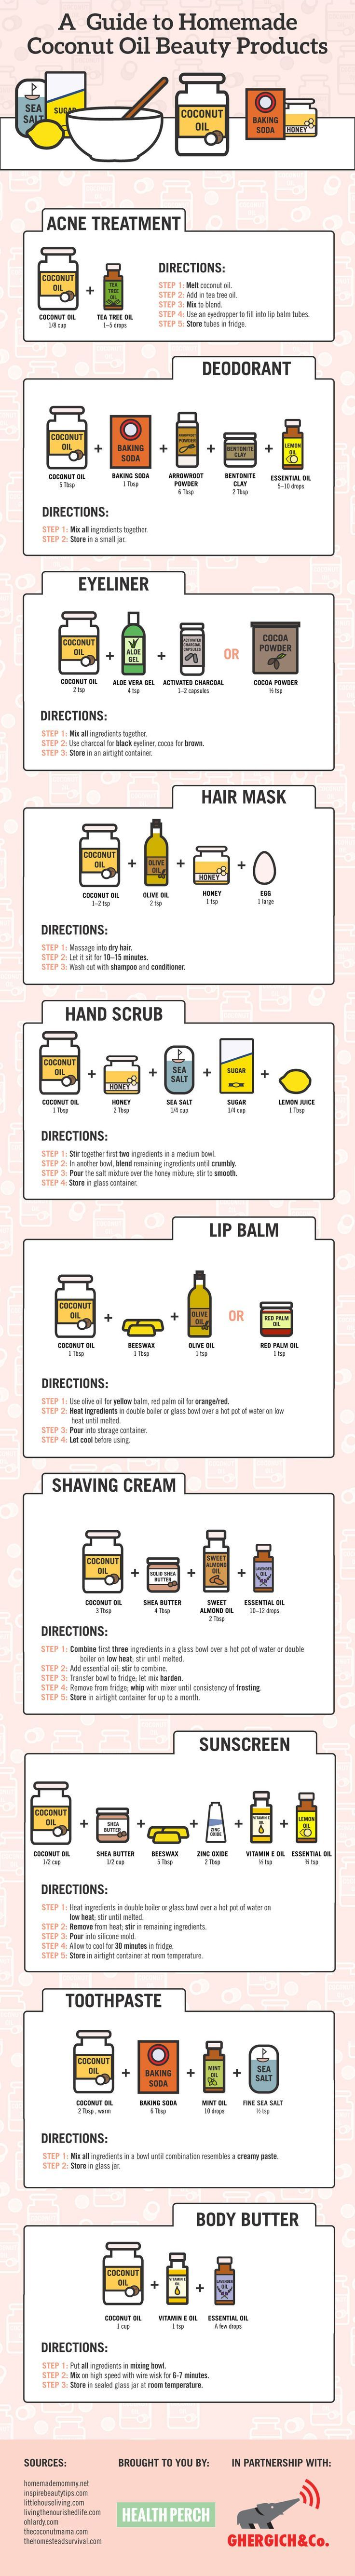 A Guide to Homemade Coconut Oil Beauty Products! Source by zerowasteweek